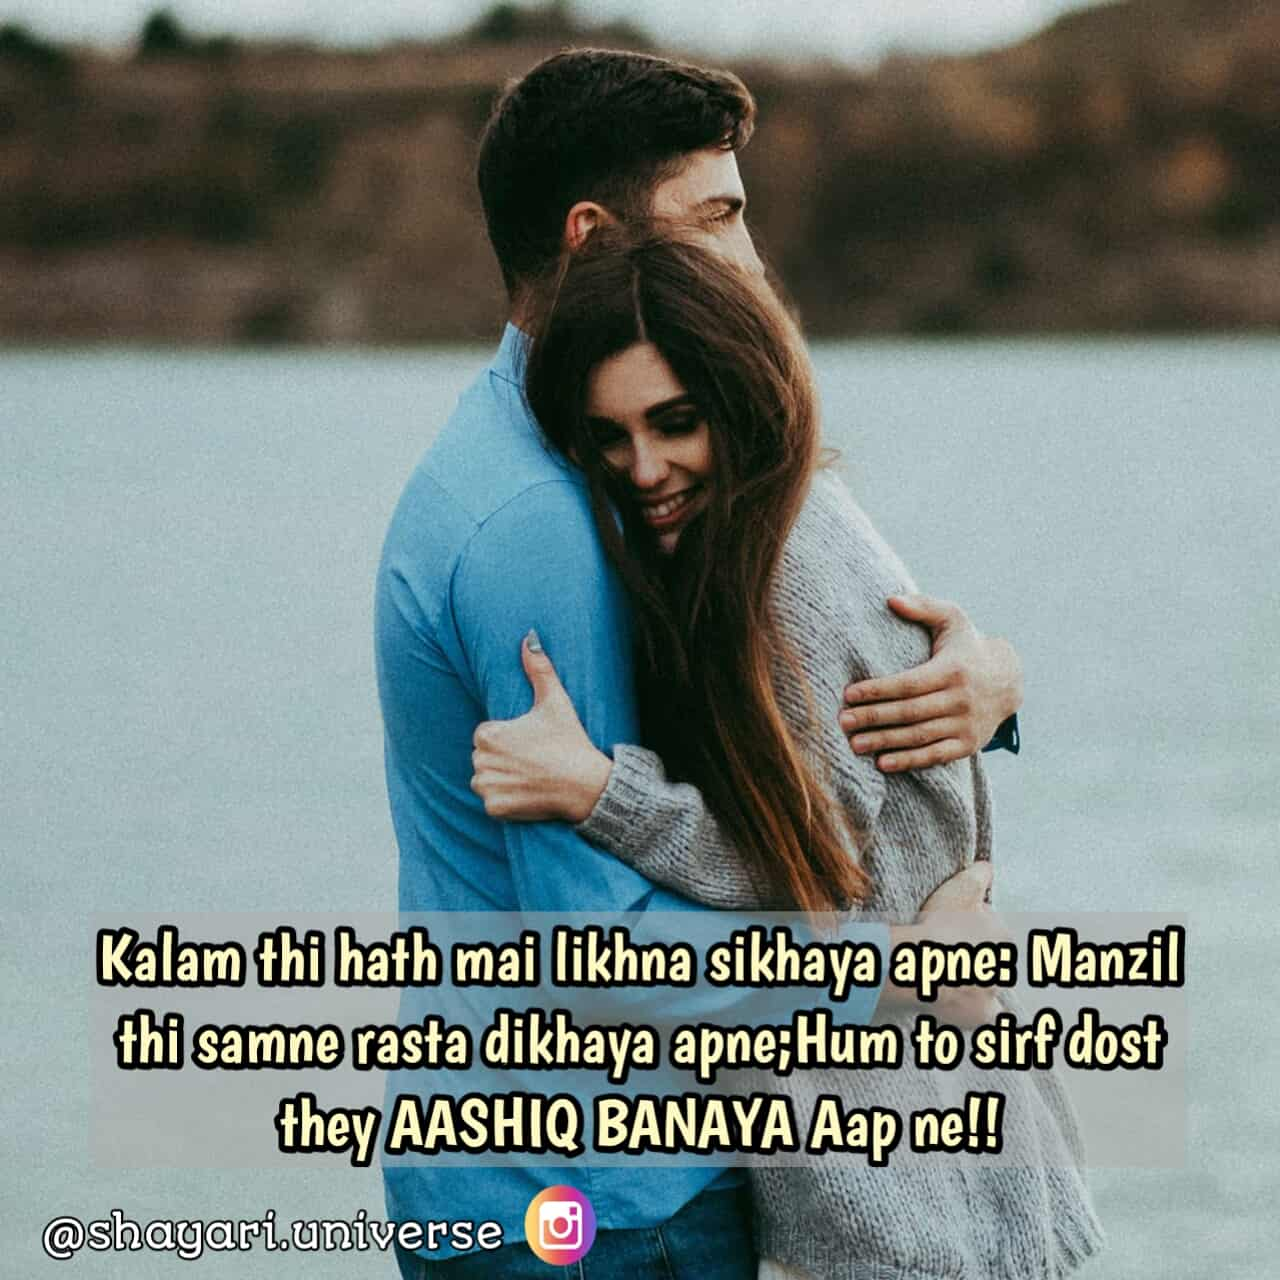 deep love shayri, shayari on life partner, love romantic sms in hindi for girlfriend, deep shayari on love, romantic yaad shayari